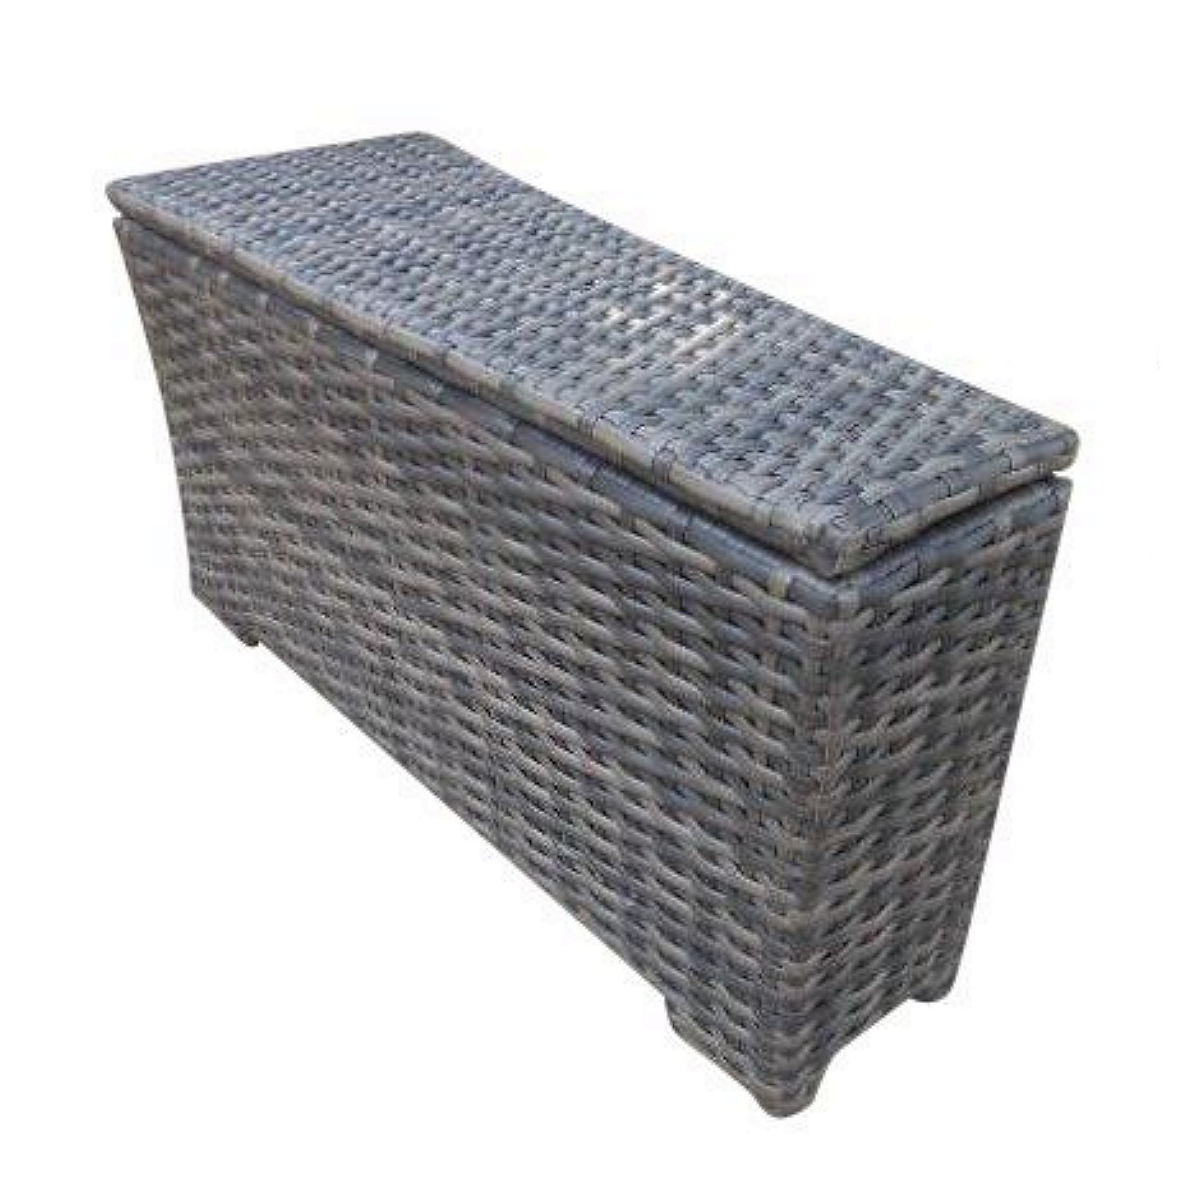 Outdoor Patio Furniture With Storage.Concord Storage Outdoor Patio Furniture Wedge End Table